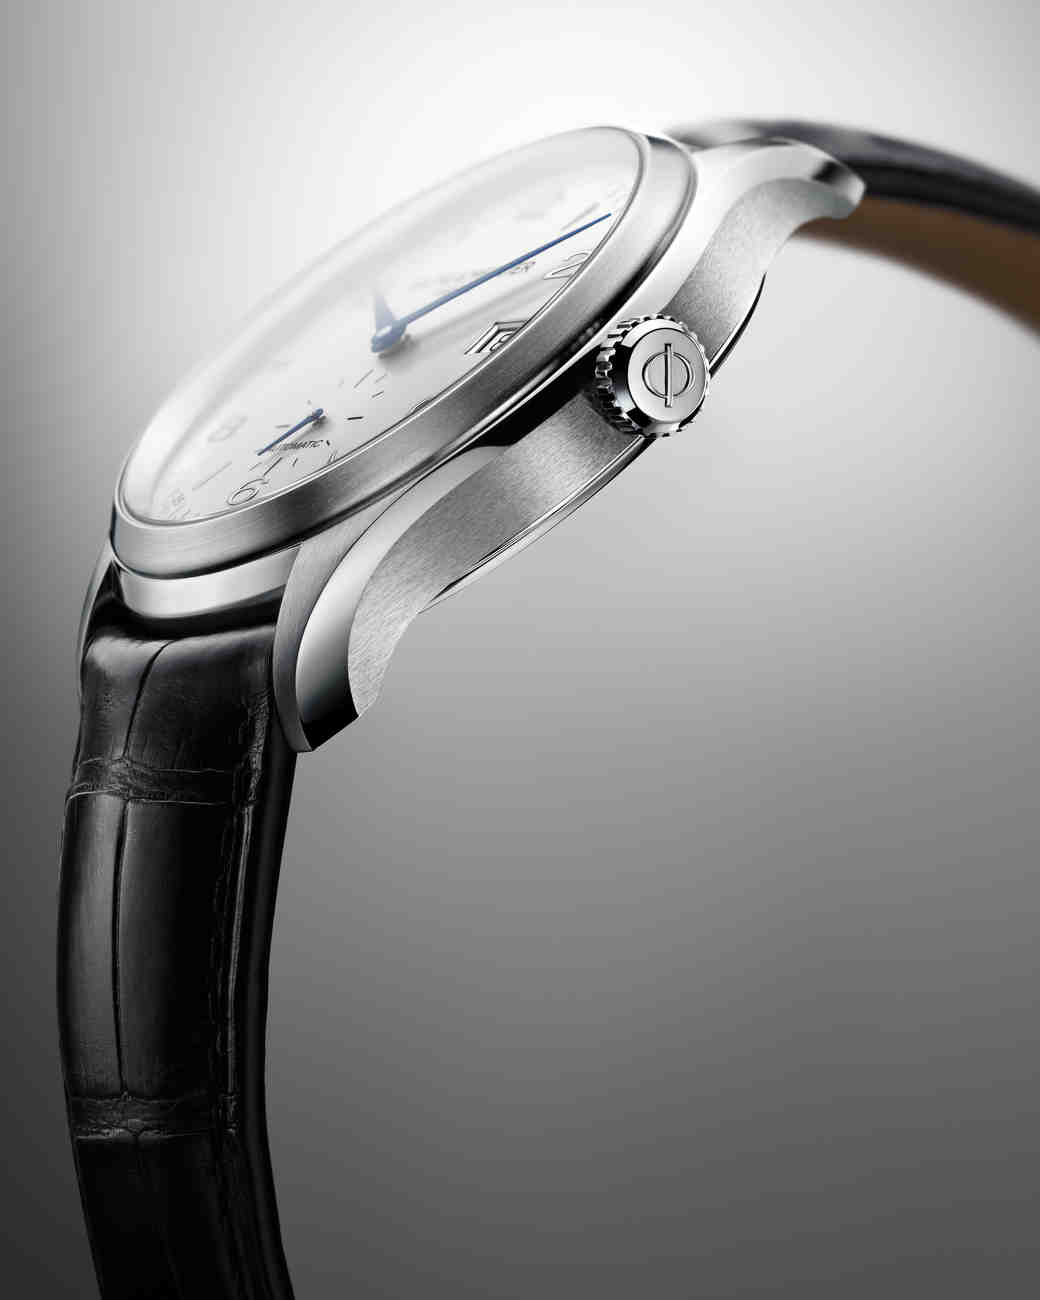 baume-mercier-watch-watch-care-3-0514.jpg